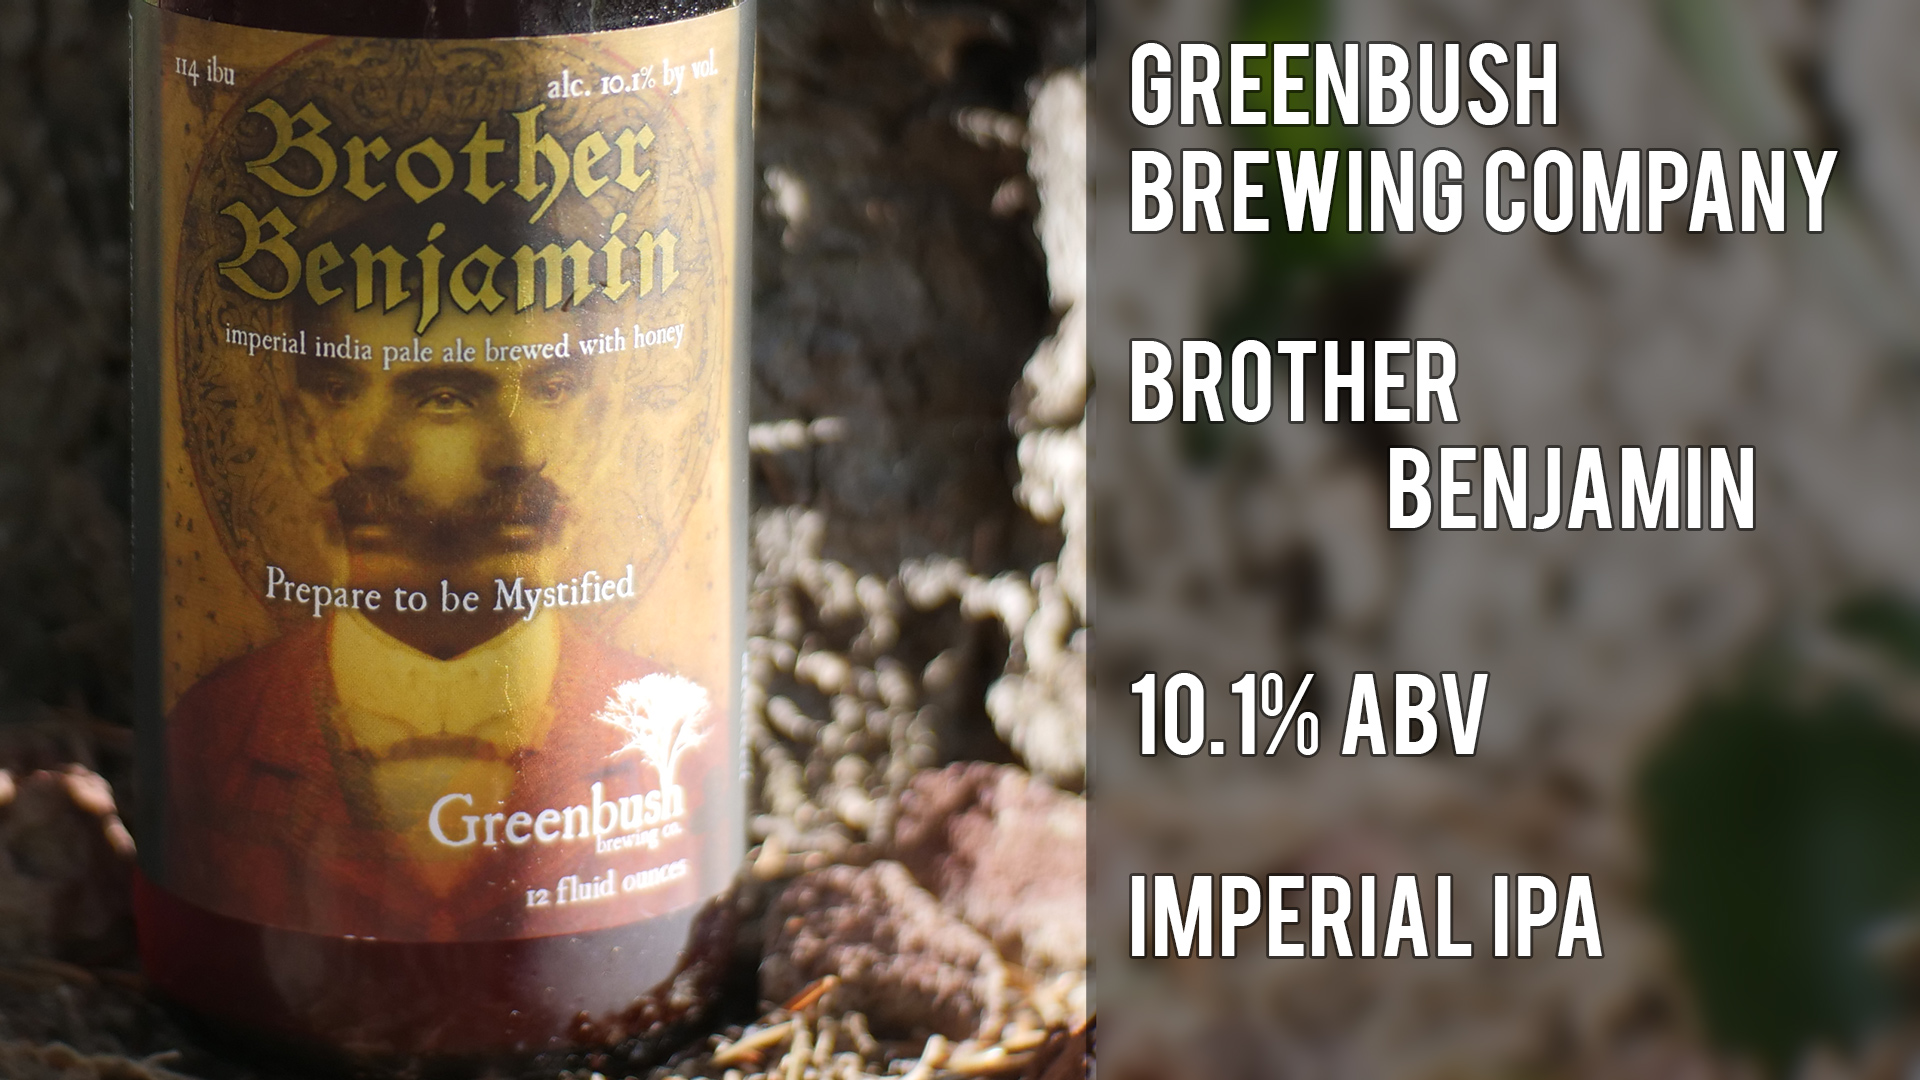 Greenbush Brewing Company's Brother Benjamin – 10.1% Imperial IPA